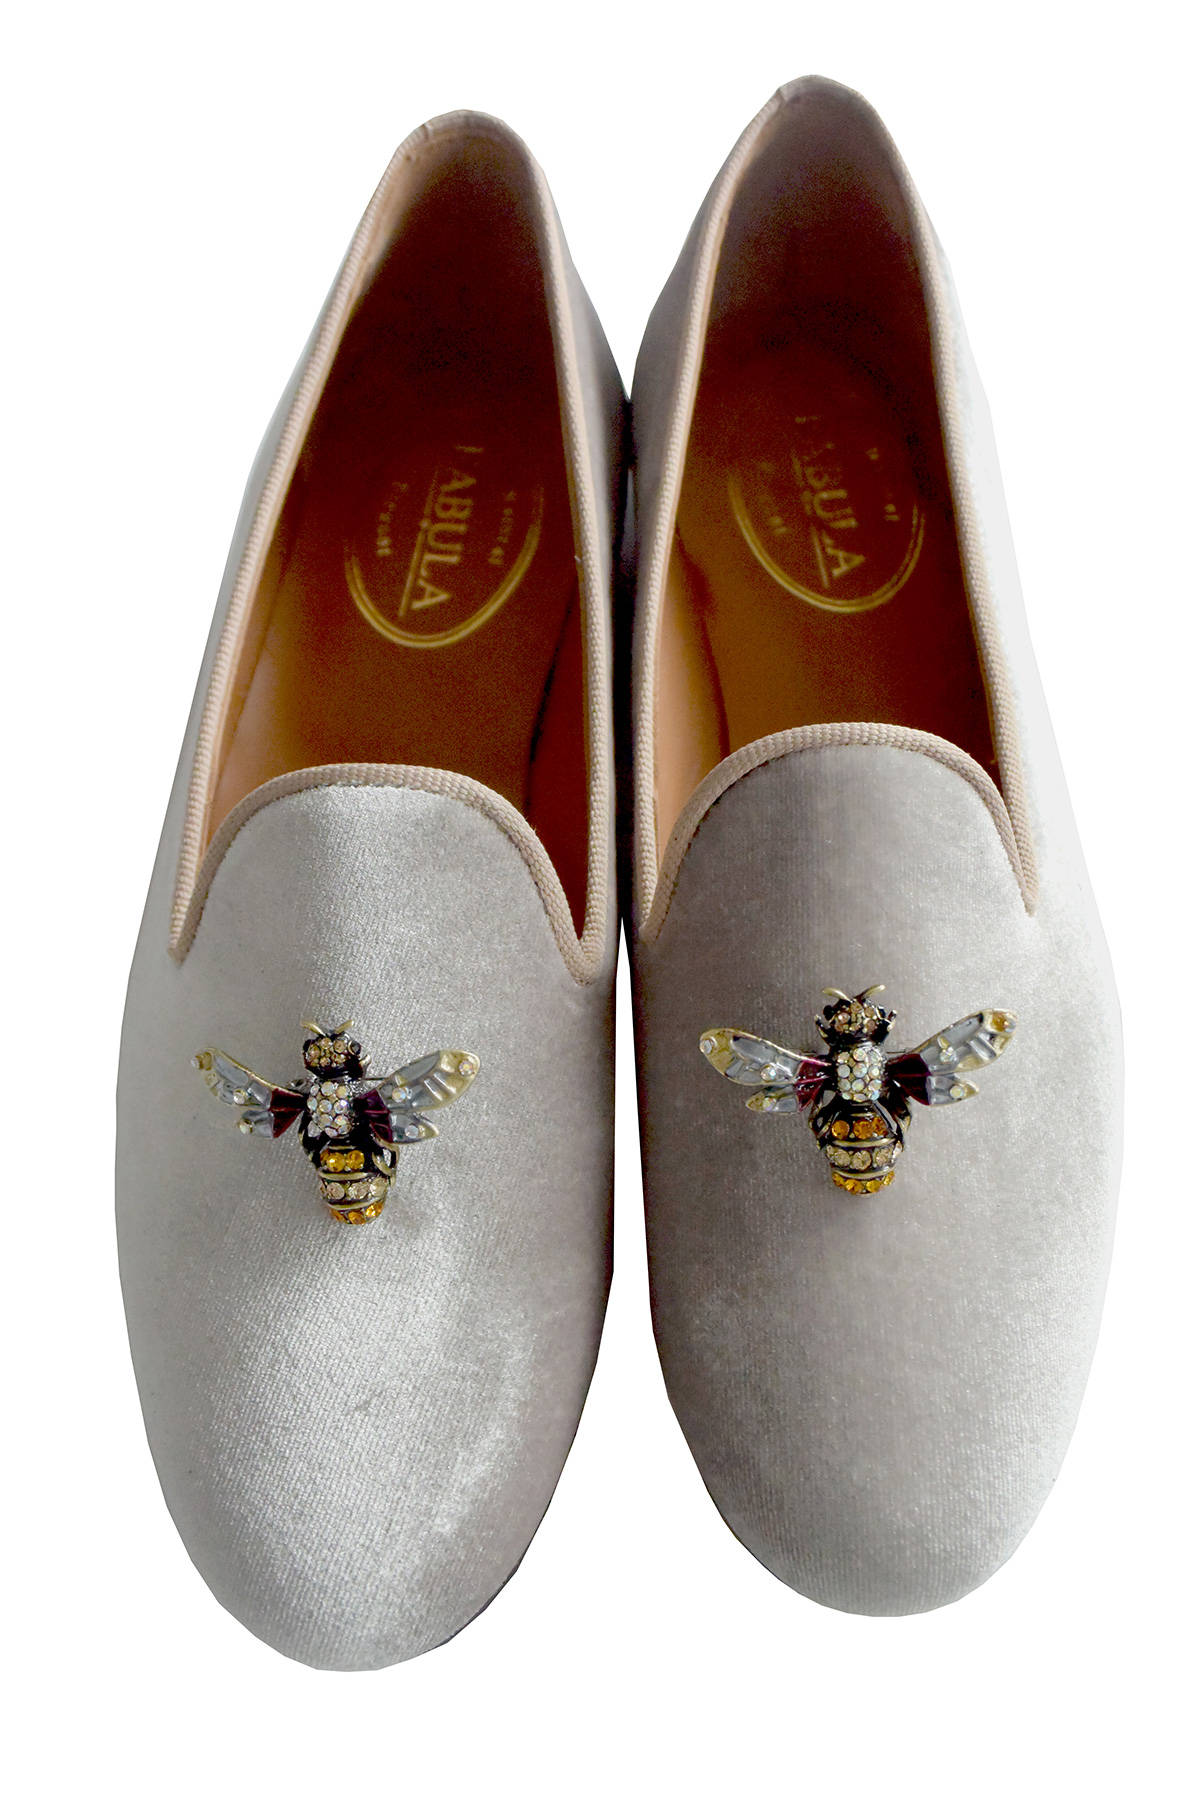 gray bespoke velvet slippers with bee brooches